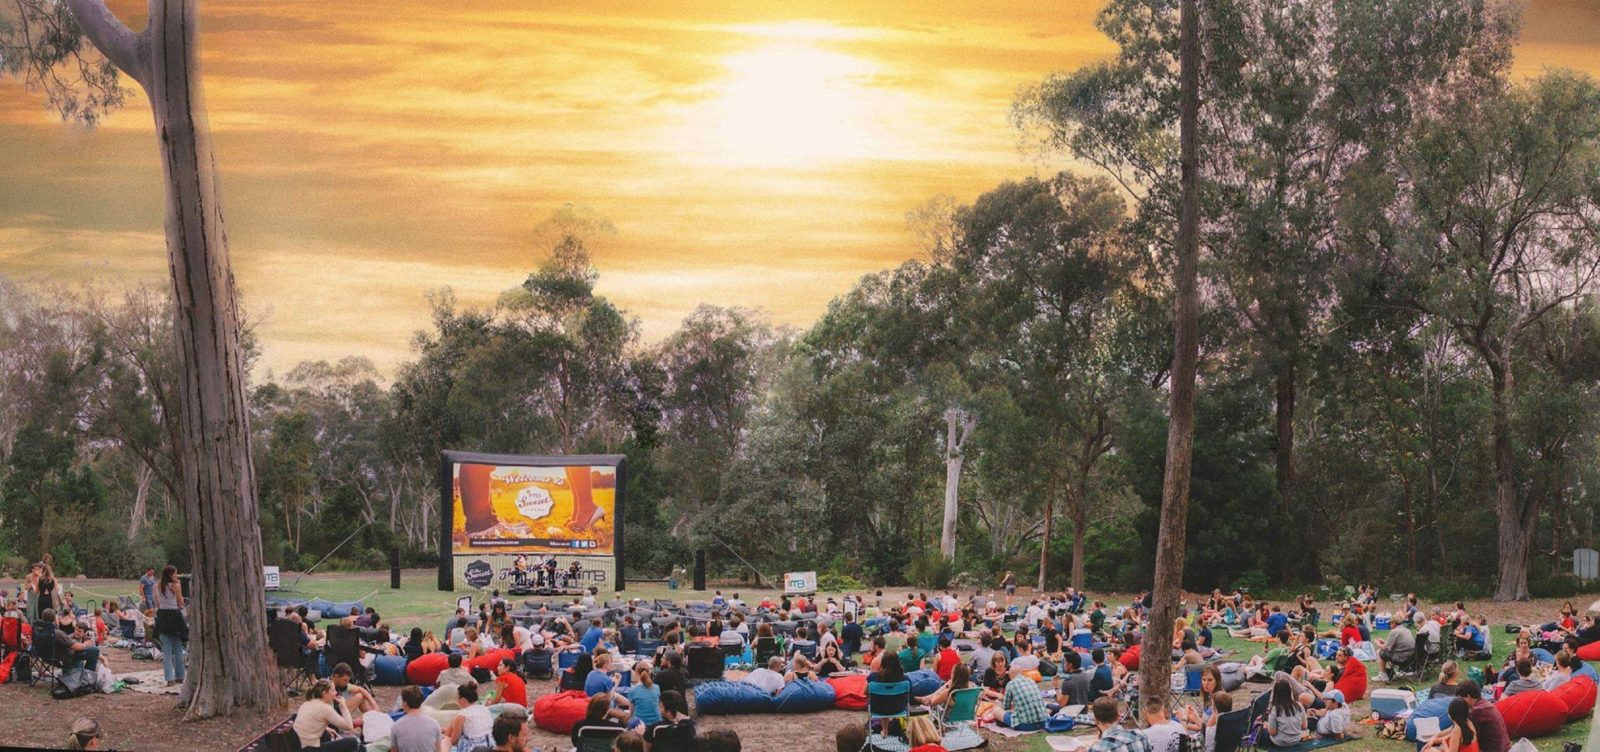 Crowd enjoying the beautiful setting sun priot to the screening of Sunset Cinema